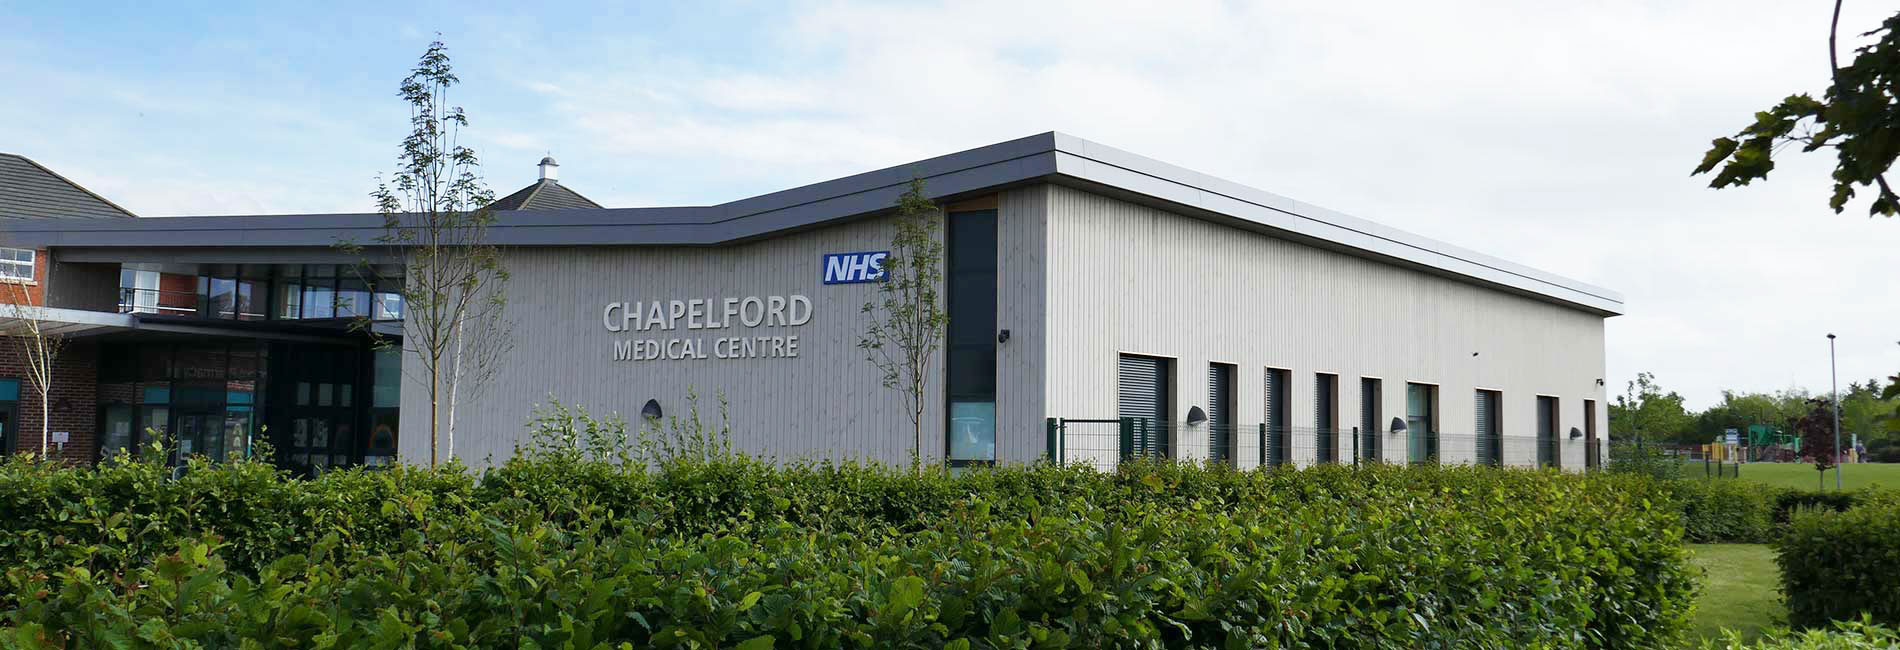 Thermowood Cladding Fits the Bill for New Medical Centre